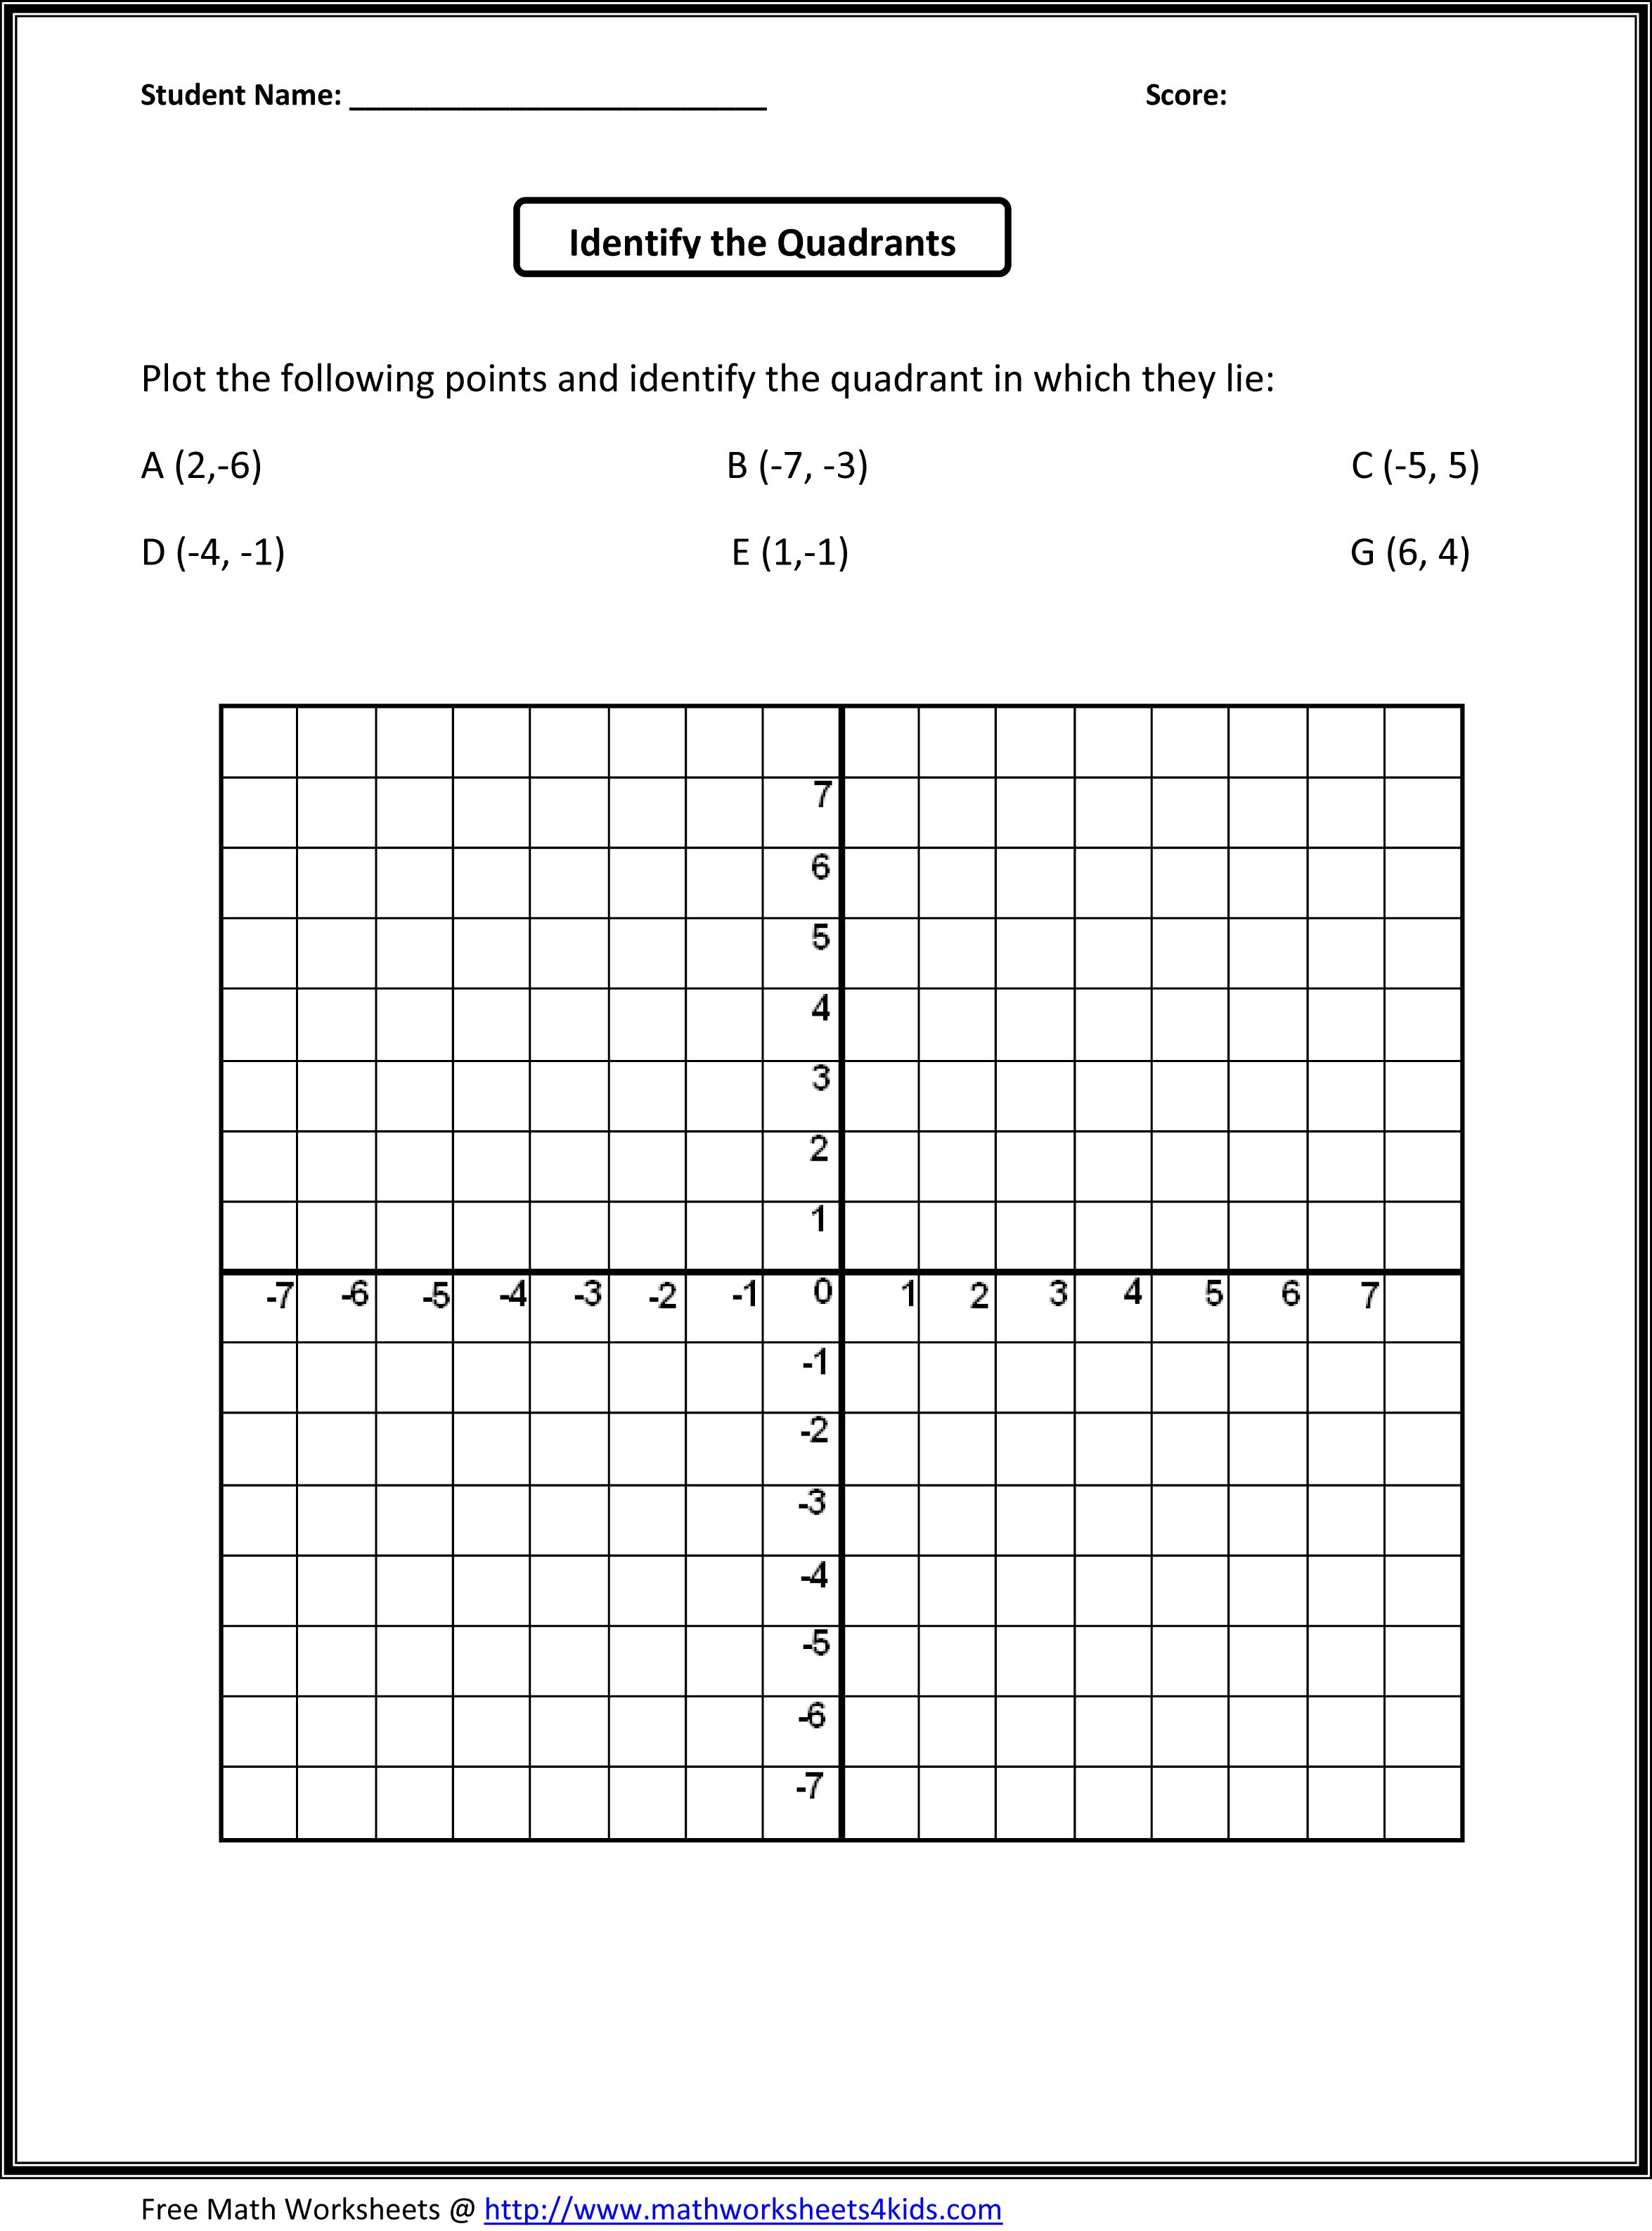 math worksheet : 1000 images about madi math on pinterest  5th grade math  : Math Printable Worksheets 5th Grade